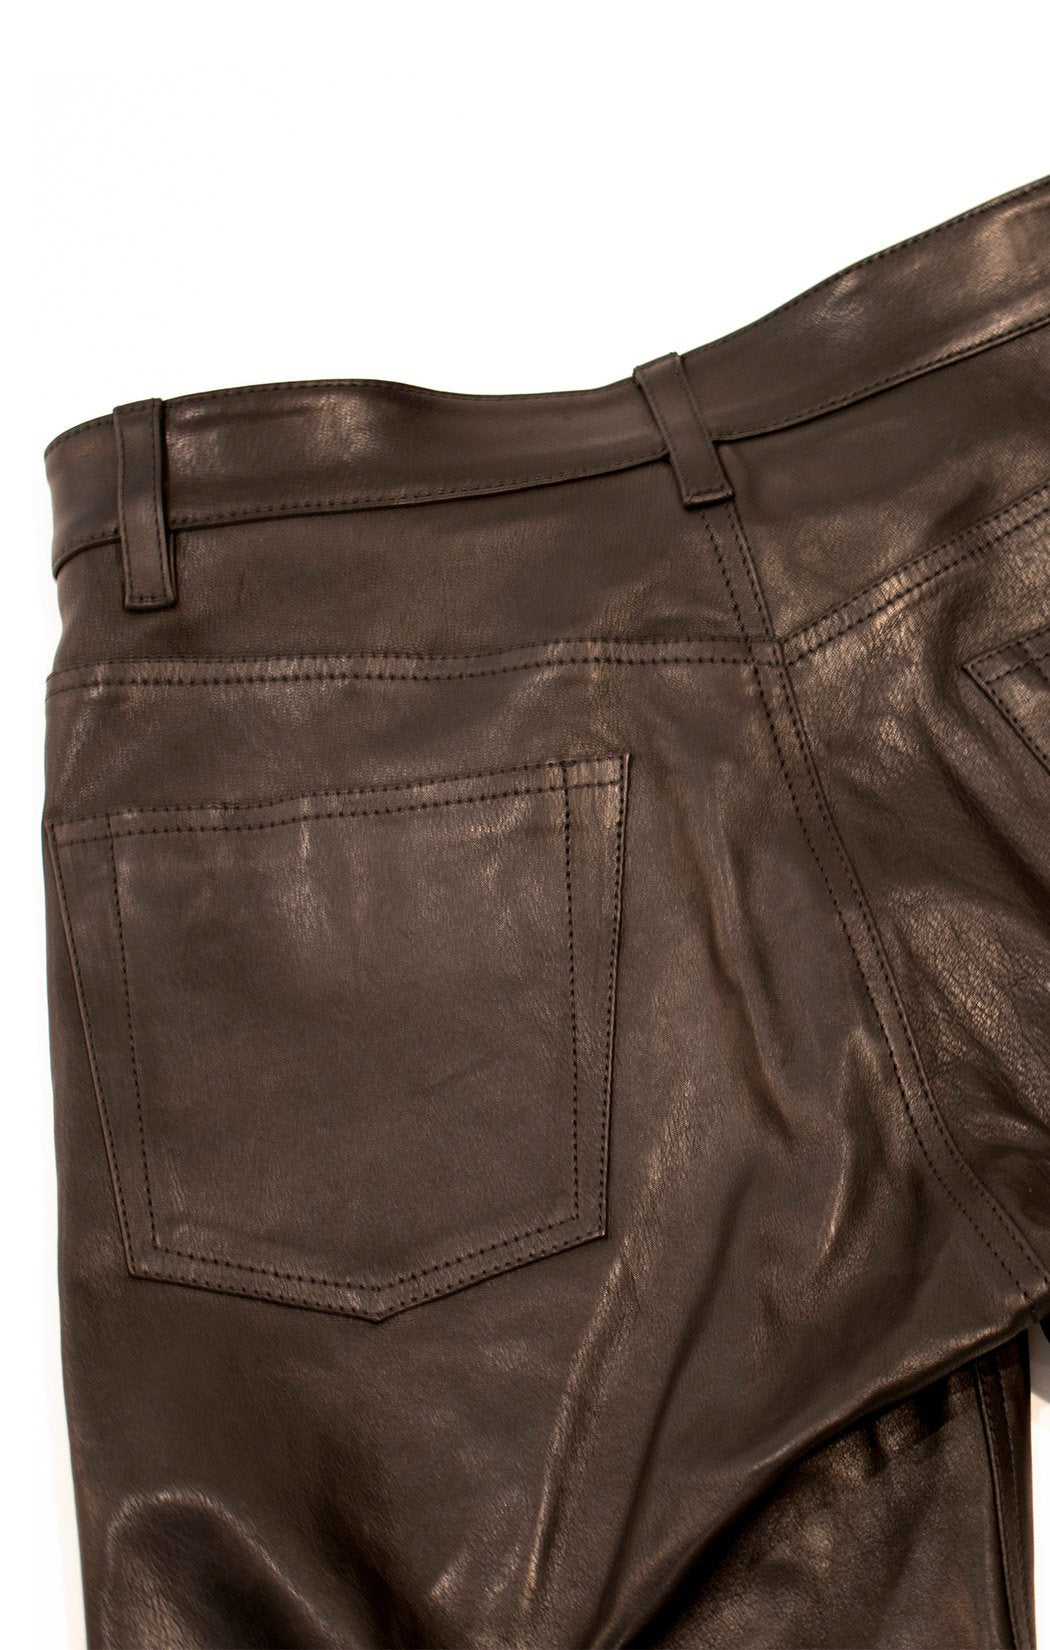 Closeup view of BALENCIAGA w/tags Leather pants Size: FR 42 (comparable to US 10)